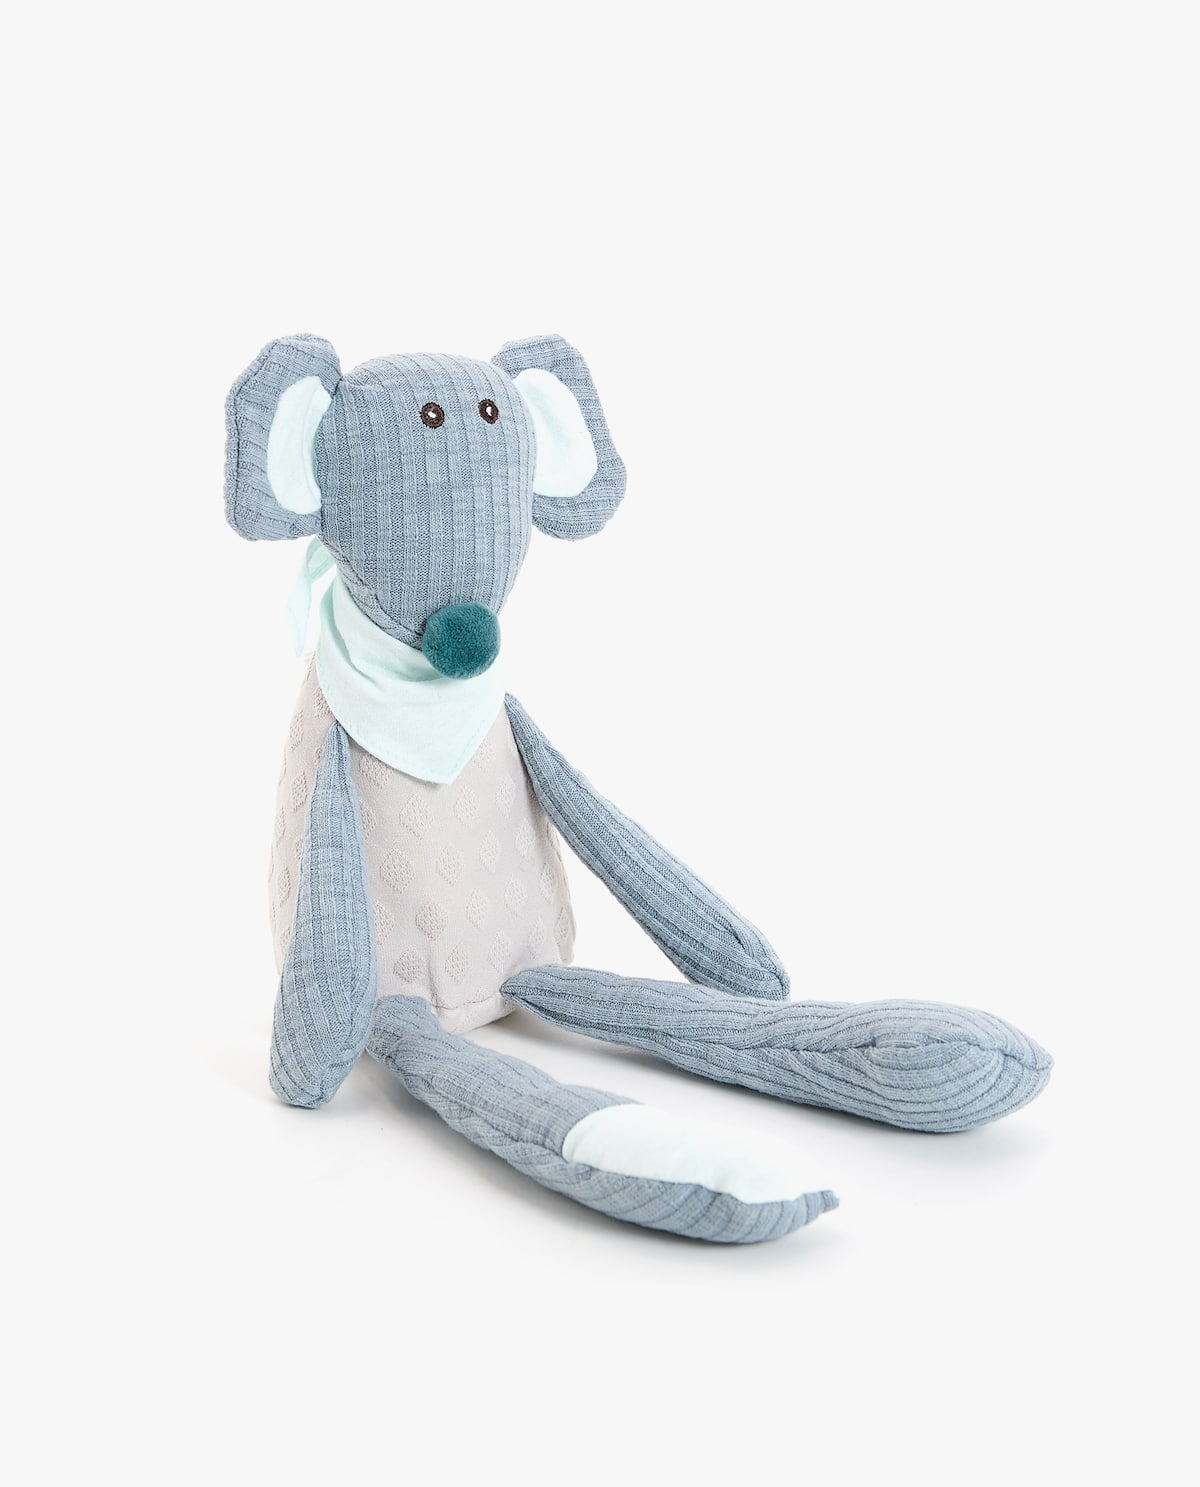 b44c0c7aba MOUSE SOFT TOY WITH NECKERCHIEF - SOFT TOYS - PLAY AND TIDY UP ...